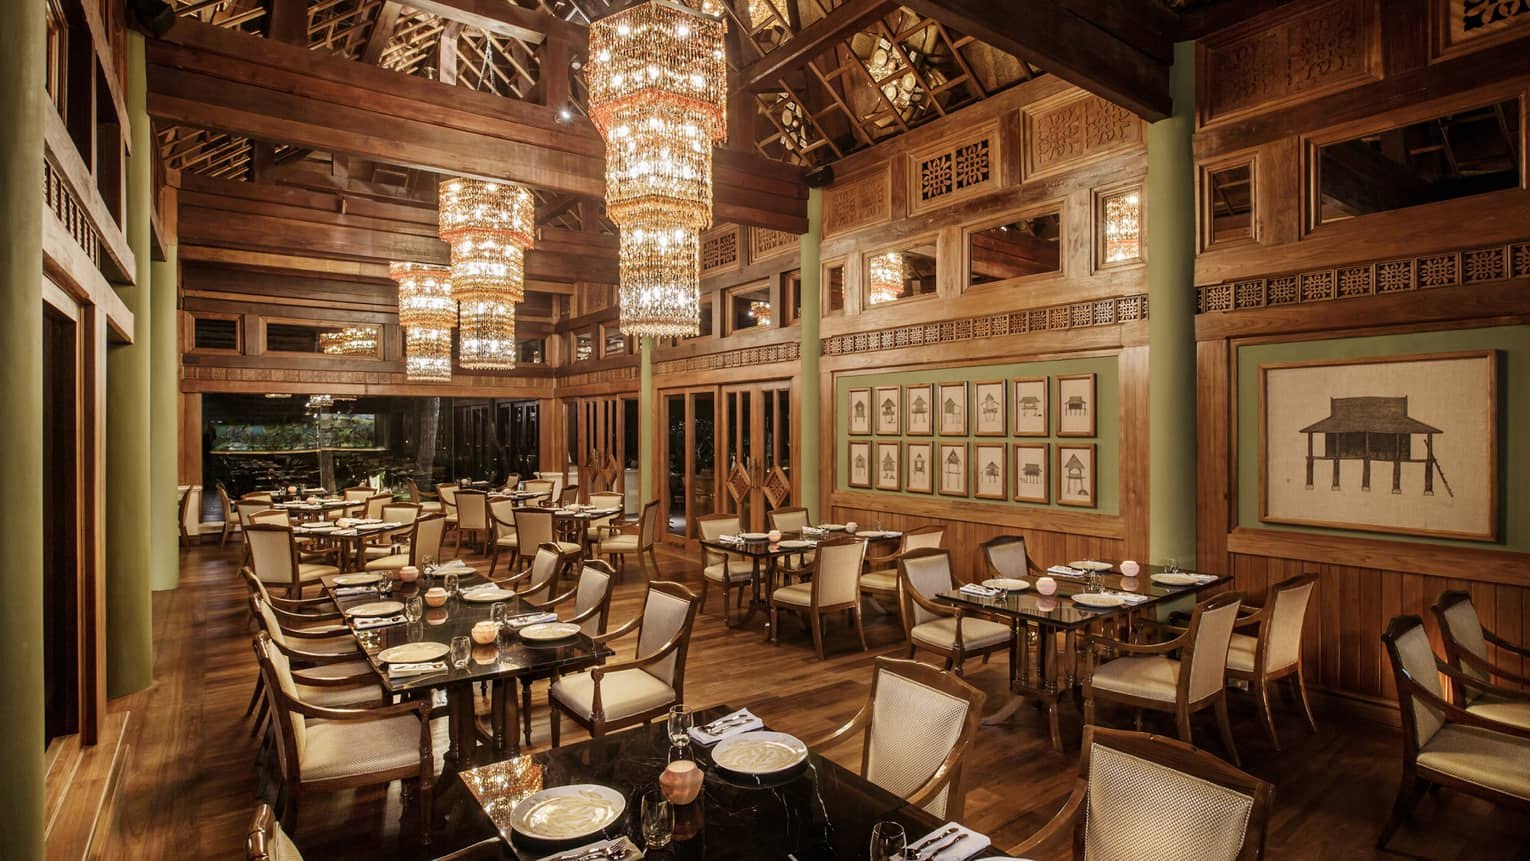 Long crystal chandeliers hang from high ceilings over KHAO indoor dining room with wood decor